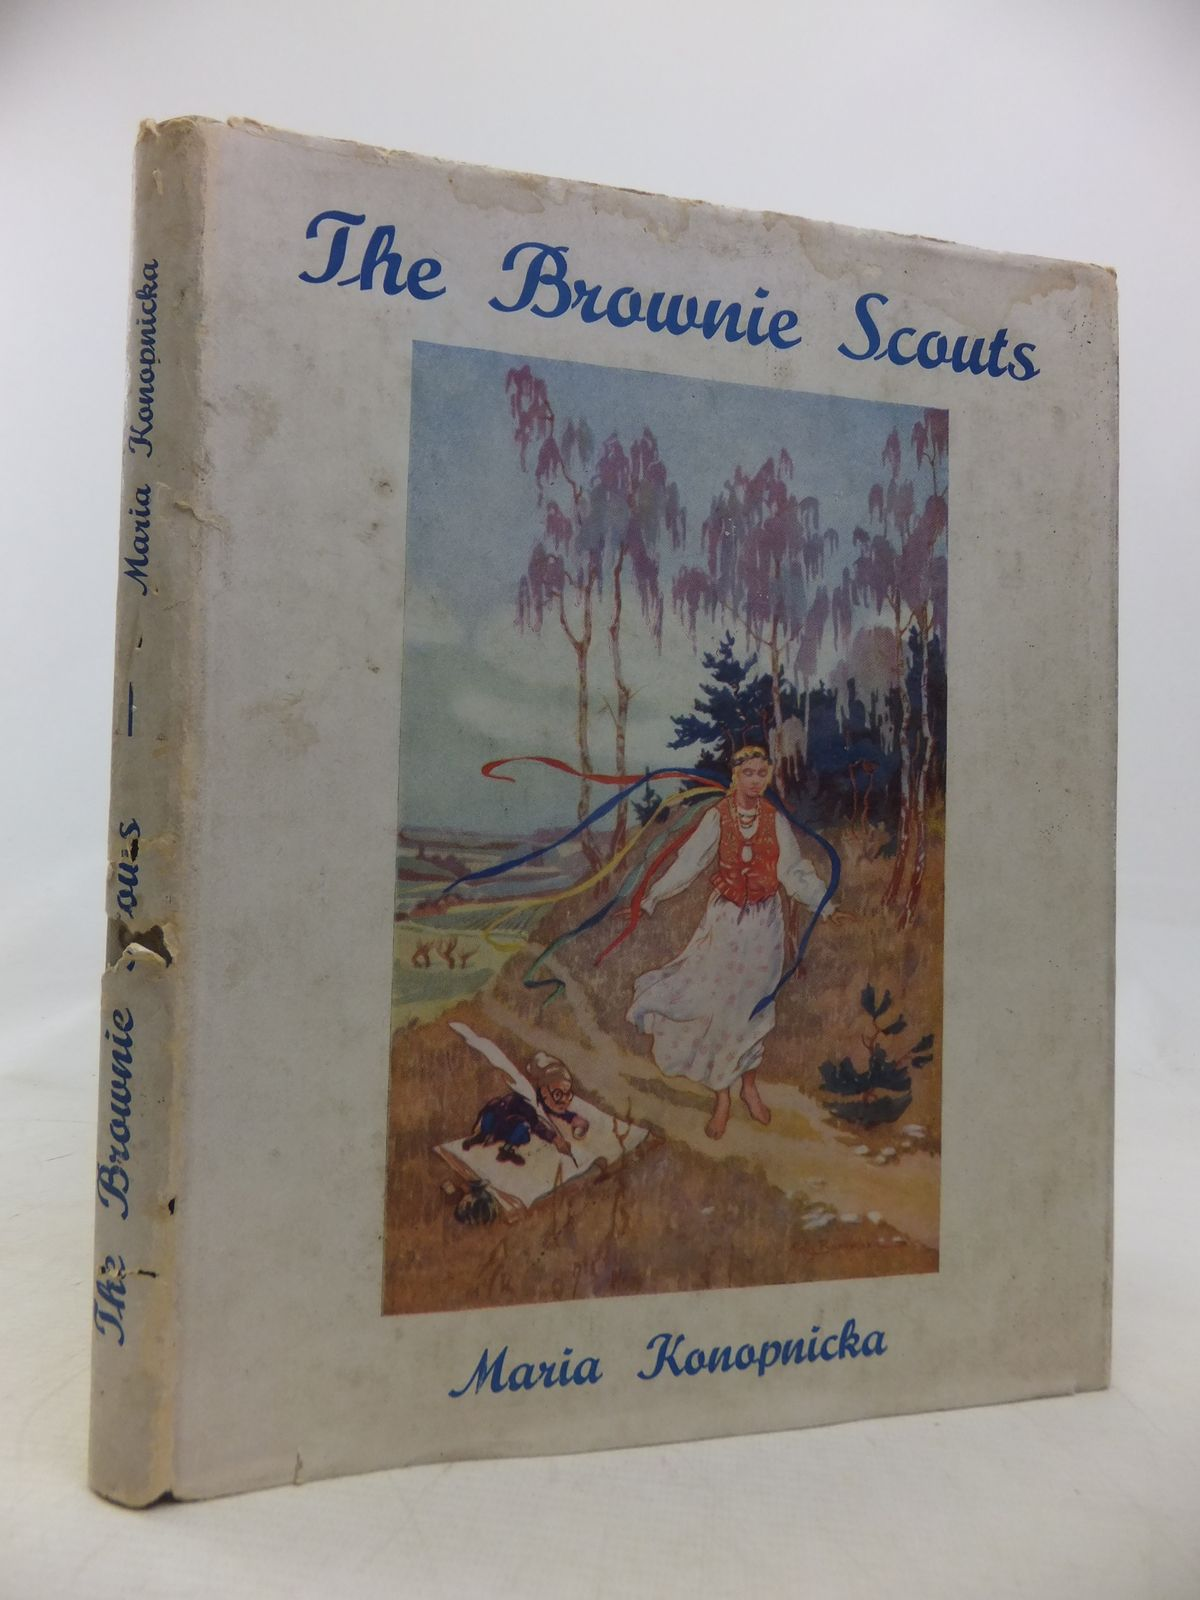 Photo of THE BROWNIE SCOUTS written by Konopnicka, Maria illustrated by Bukowska, Molly published by Polish Book Depot (STOCK CODE: 2115029)  for sale by Stella & Rose's Books